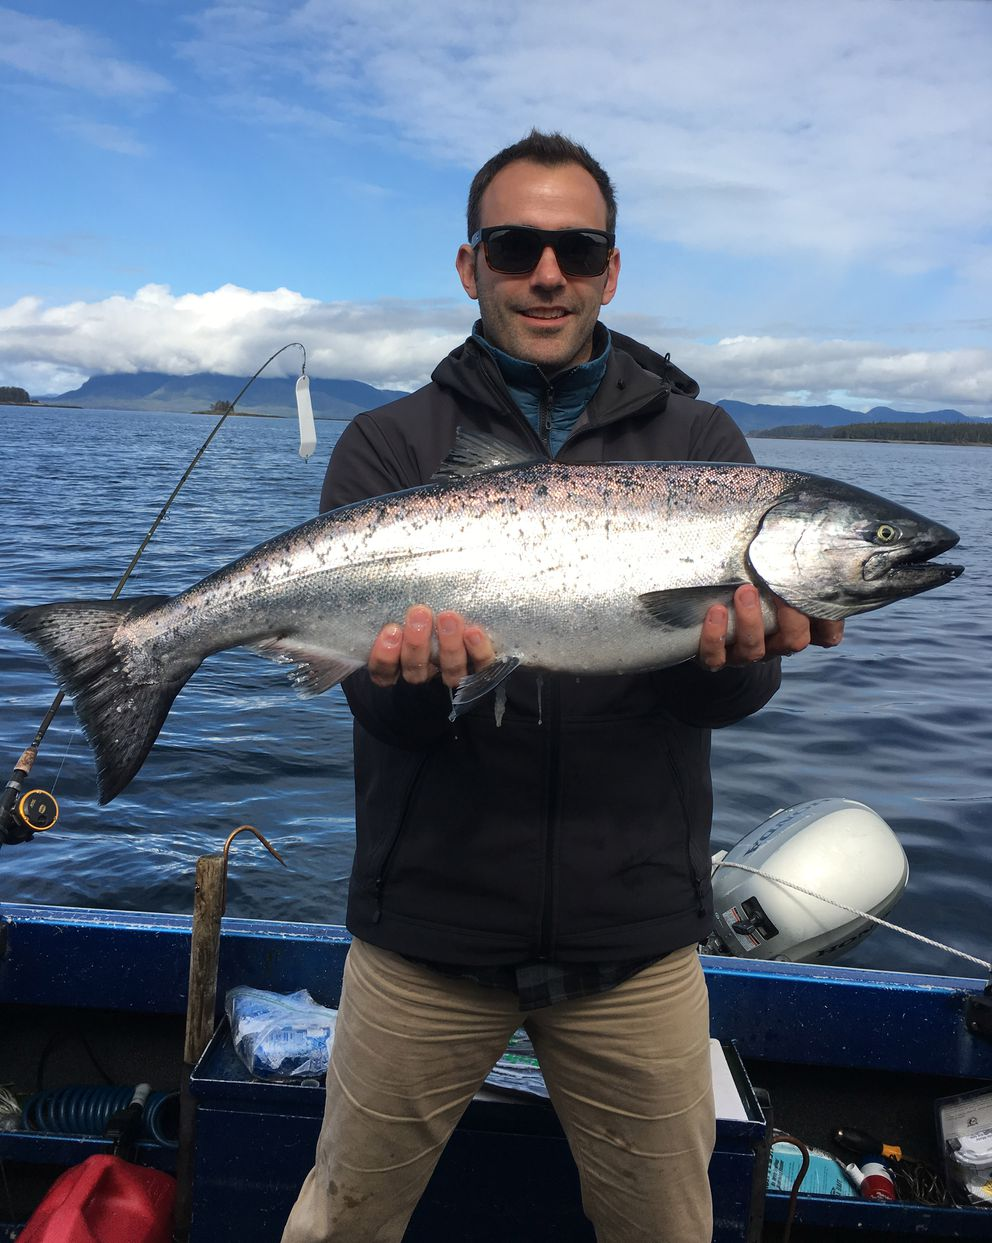 Jeff Harasimowicz shows off the king salmon he caught on his first trip to Metlakatla in 2017. (Photo courtesy Jeff Harasimowicz)